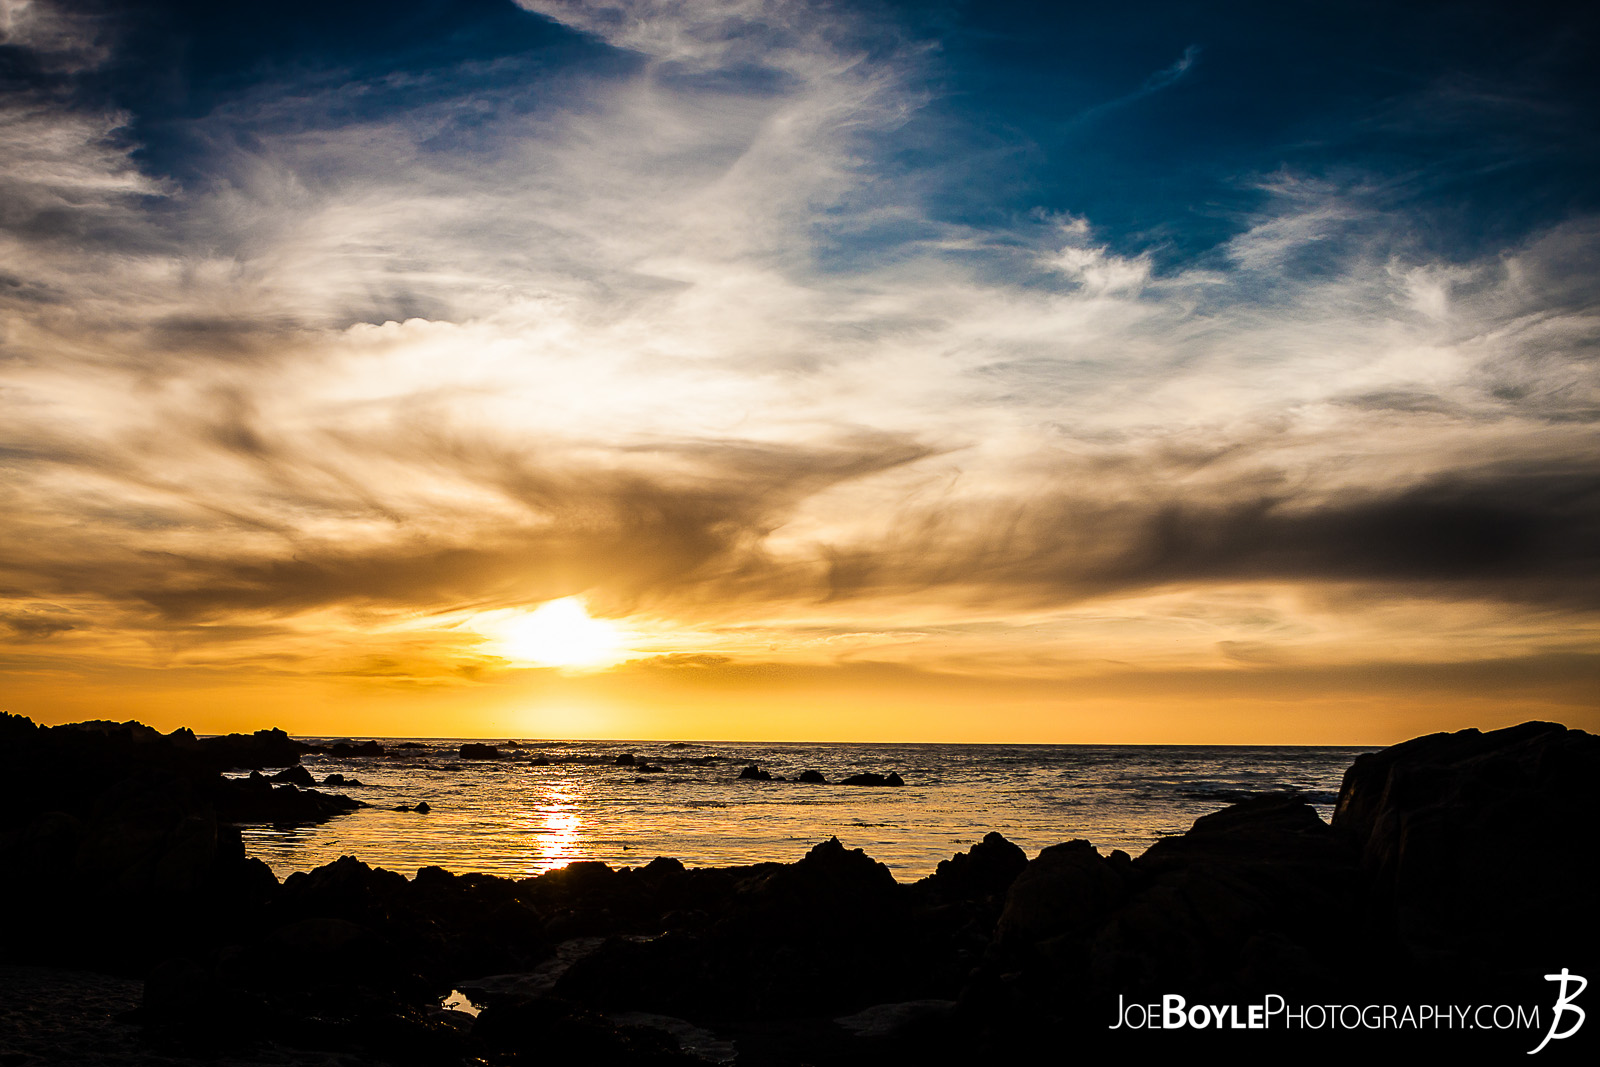 When I was traveling to Monterey, California I spent a lot of time just walking around the city, Pacific Grove and the sand dunes in the area. Here is a shot of a beautiful, golden sunset in Pacific Grove!